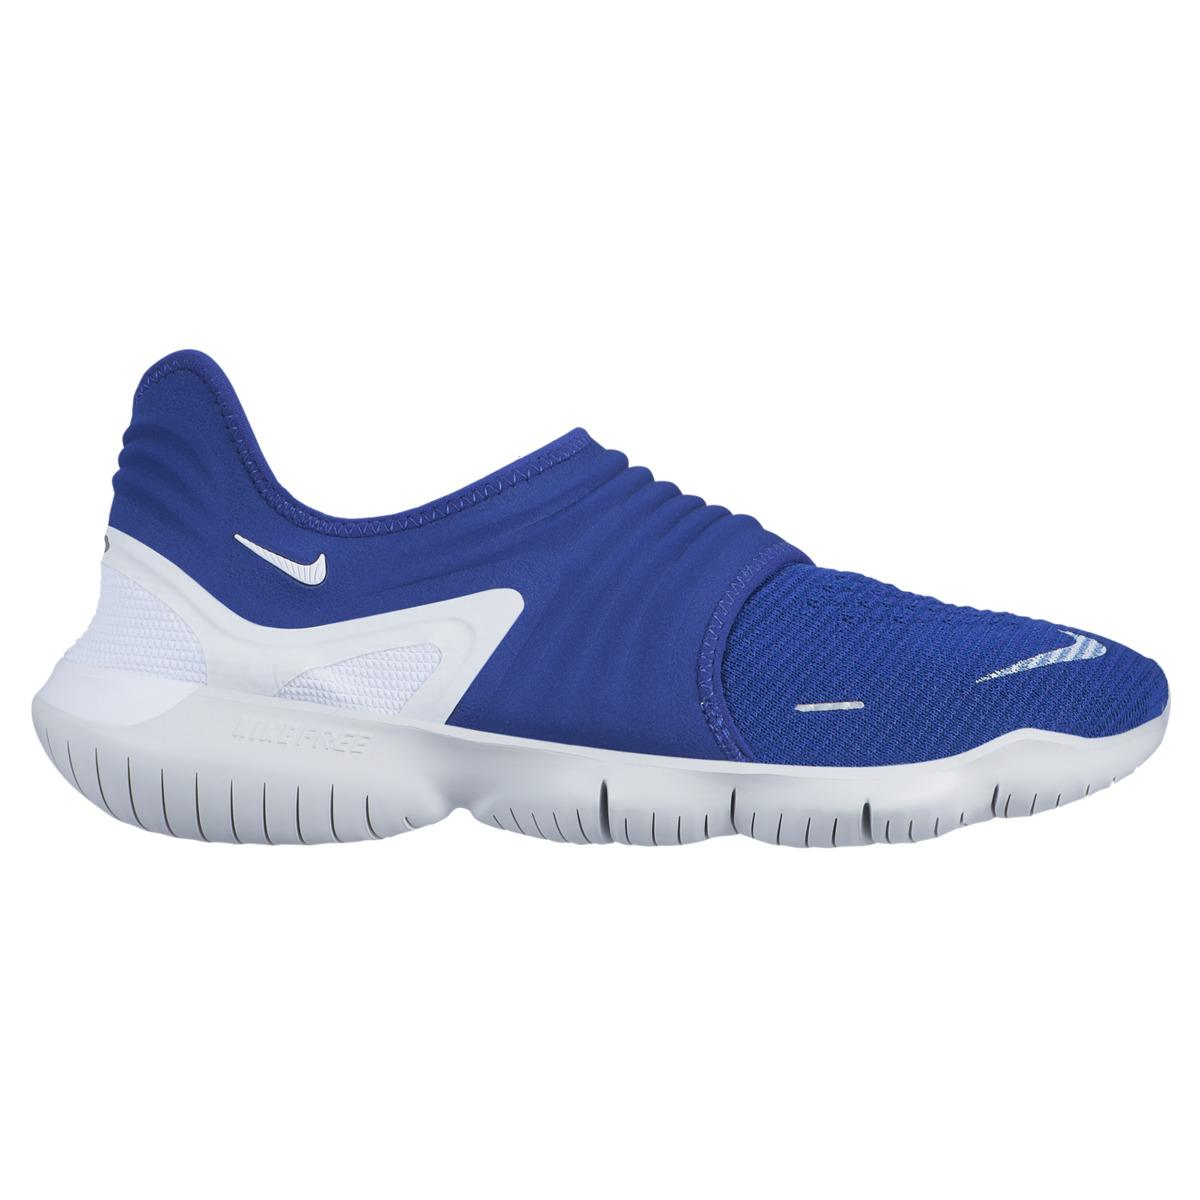 1a41b74d8caac Nike. Men s Blue Free Rn Flyknit 3.0 Running Shoes. £112 From El Corte  Ingles